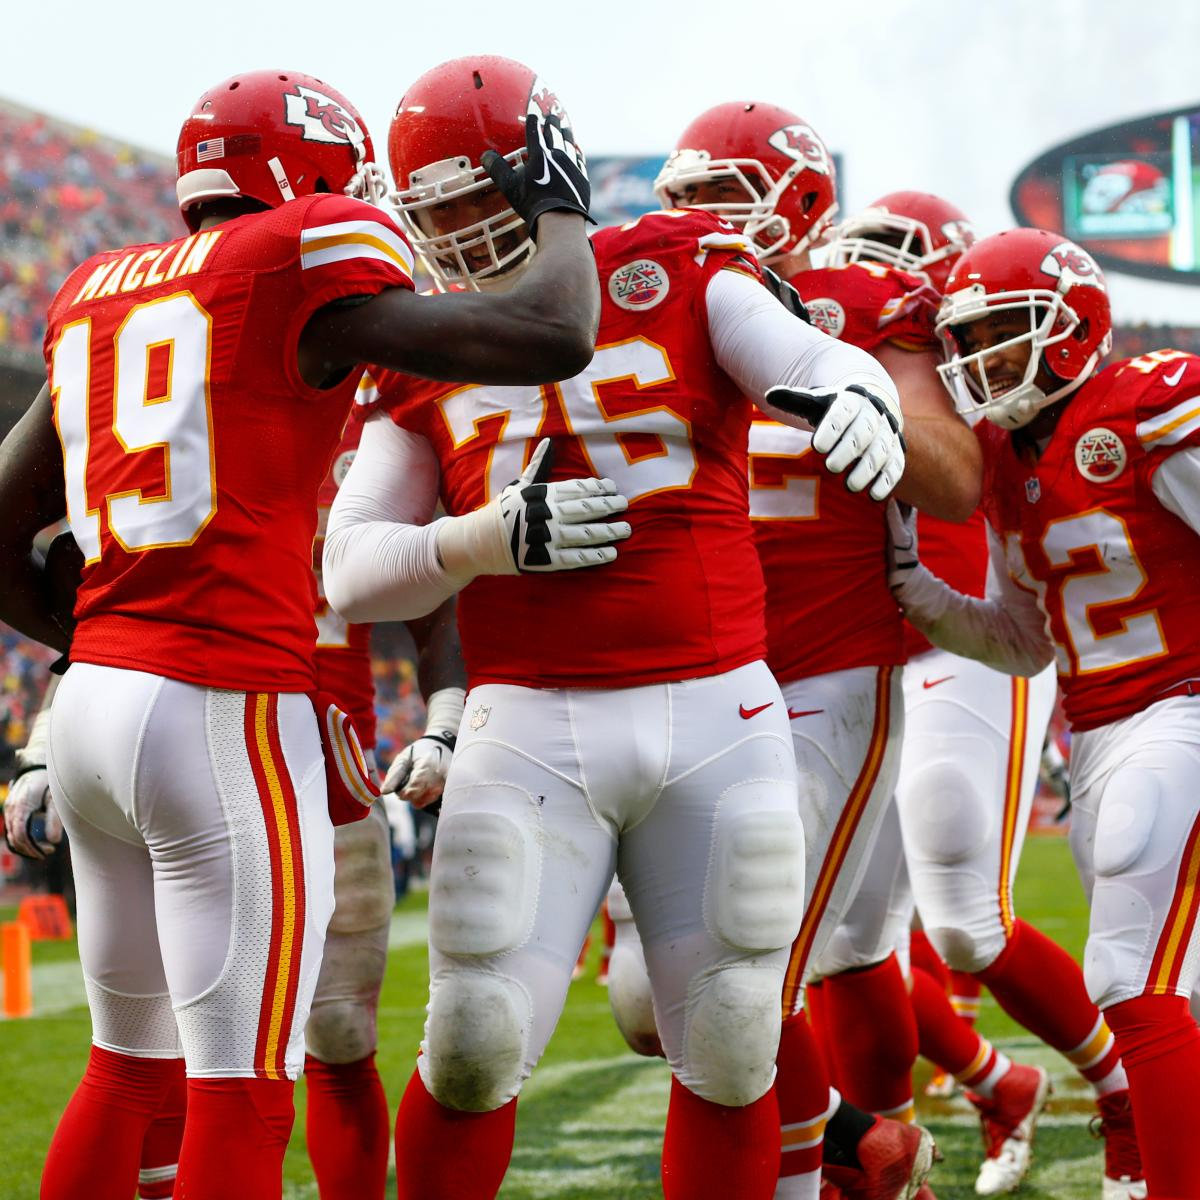 Chiefs  Laurent Duvernay-Tardif Wants  M.D.  on Jersey After Medical School   cb60fa47e